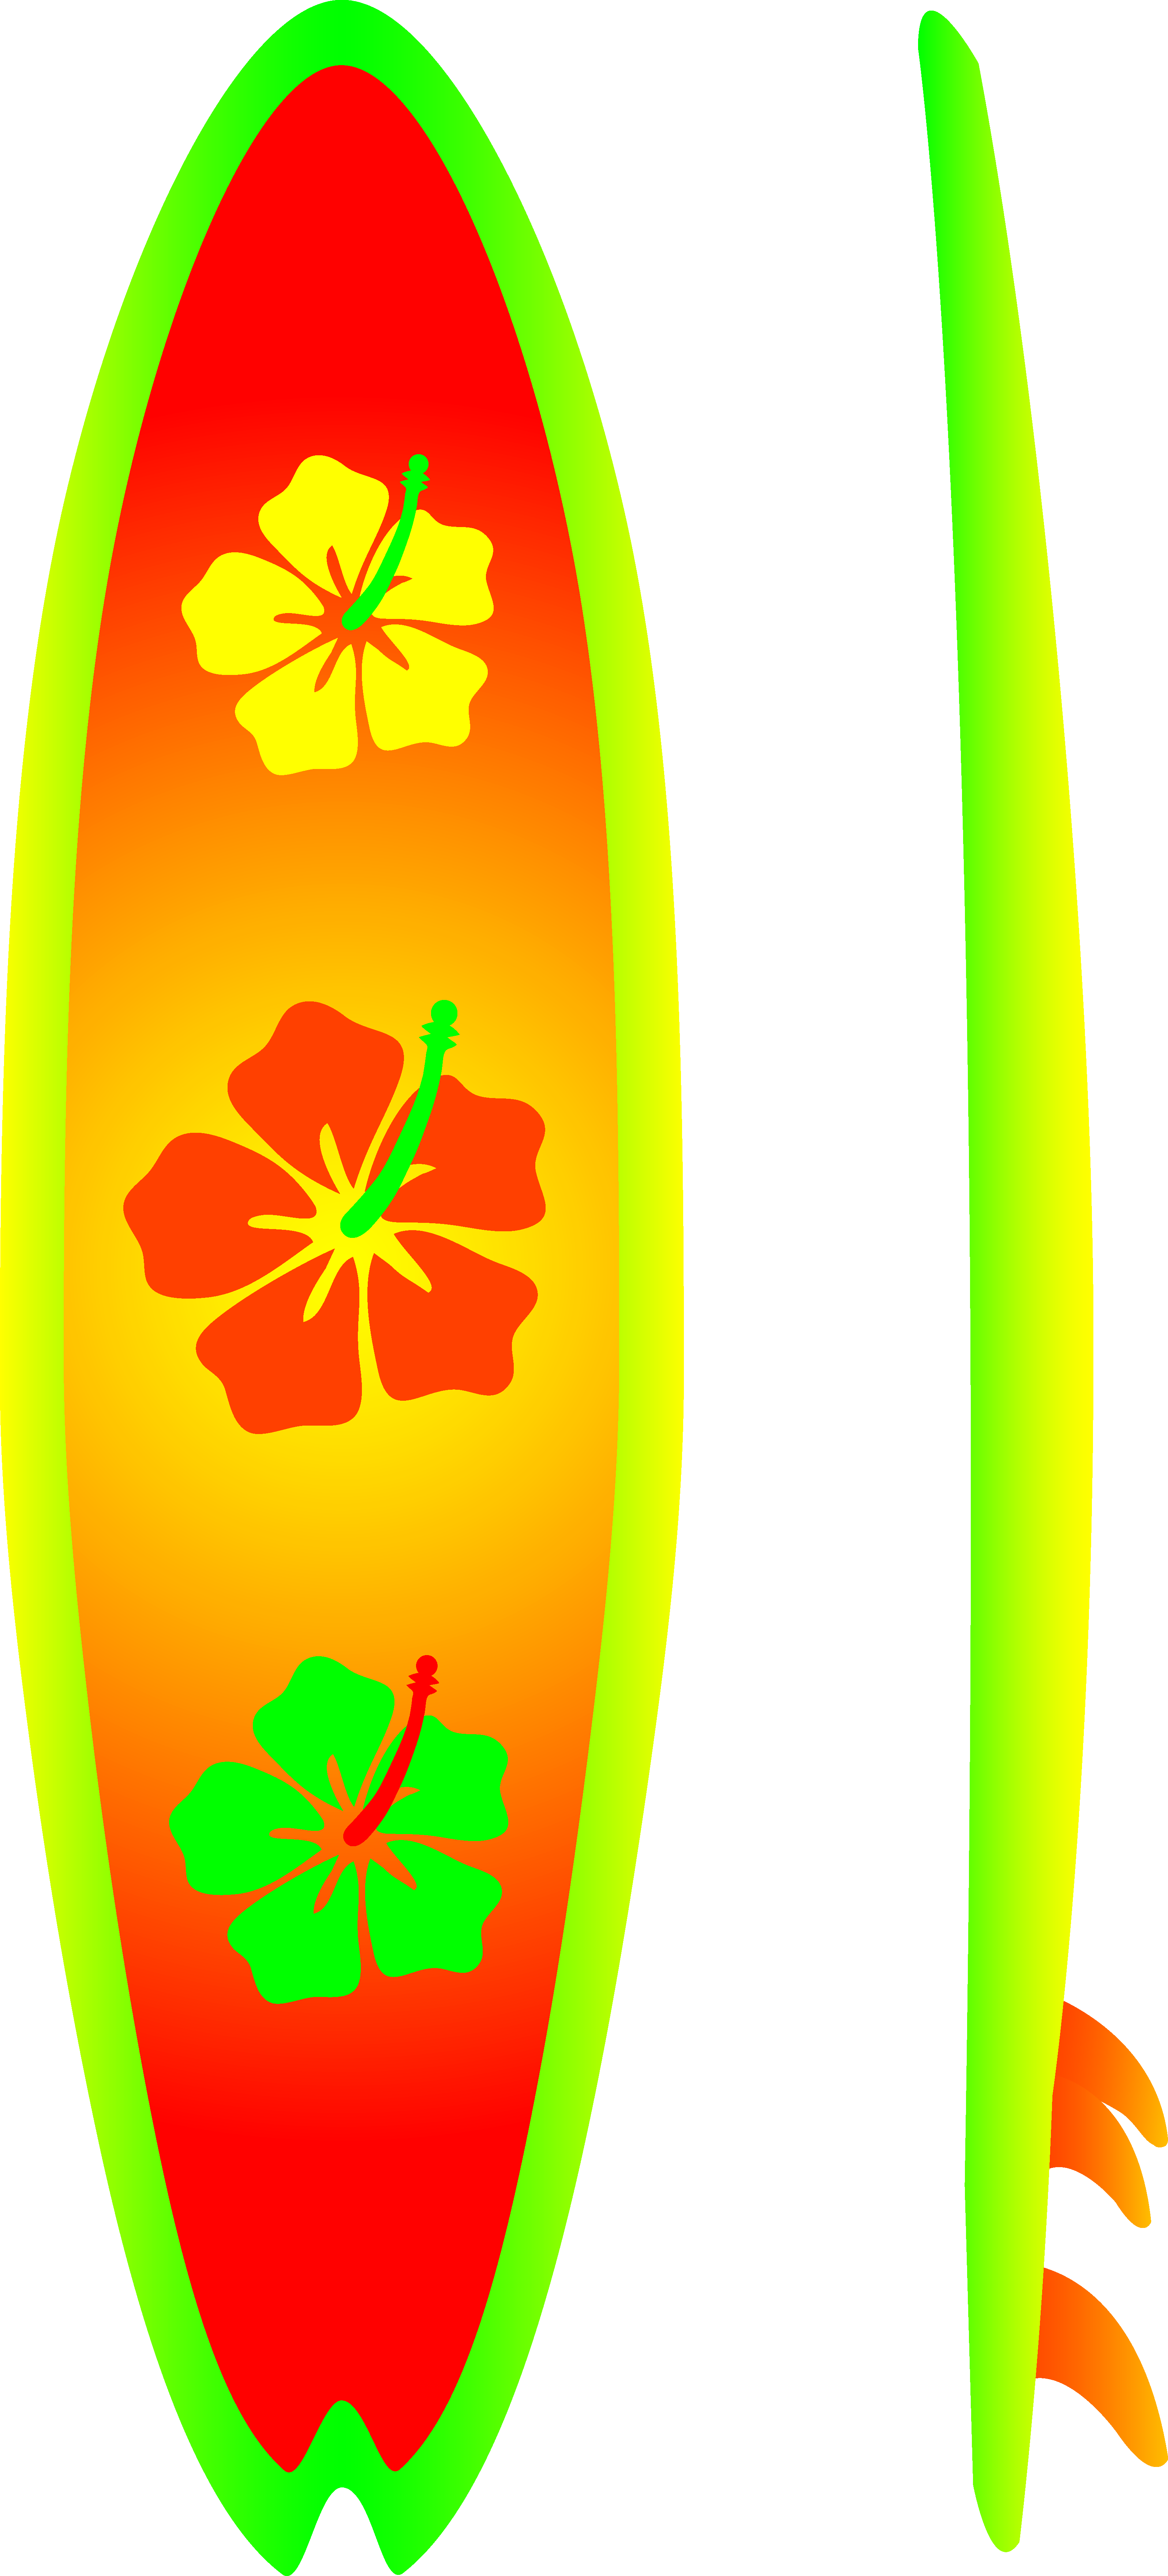 Neon Surfboard With Hibiscus Design Free Clip Art